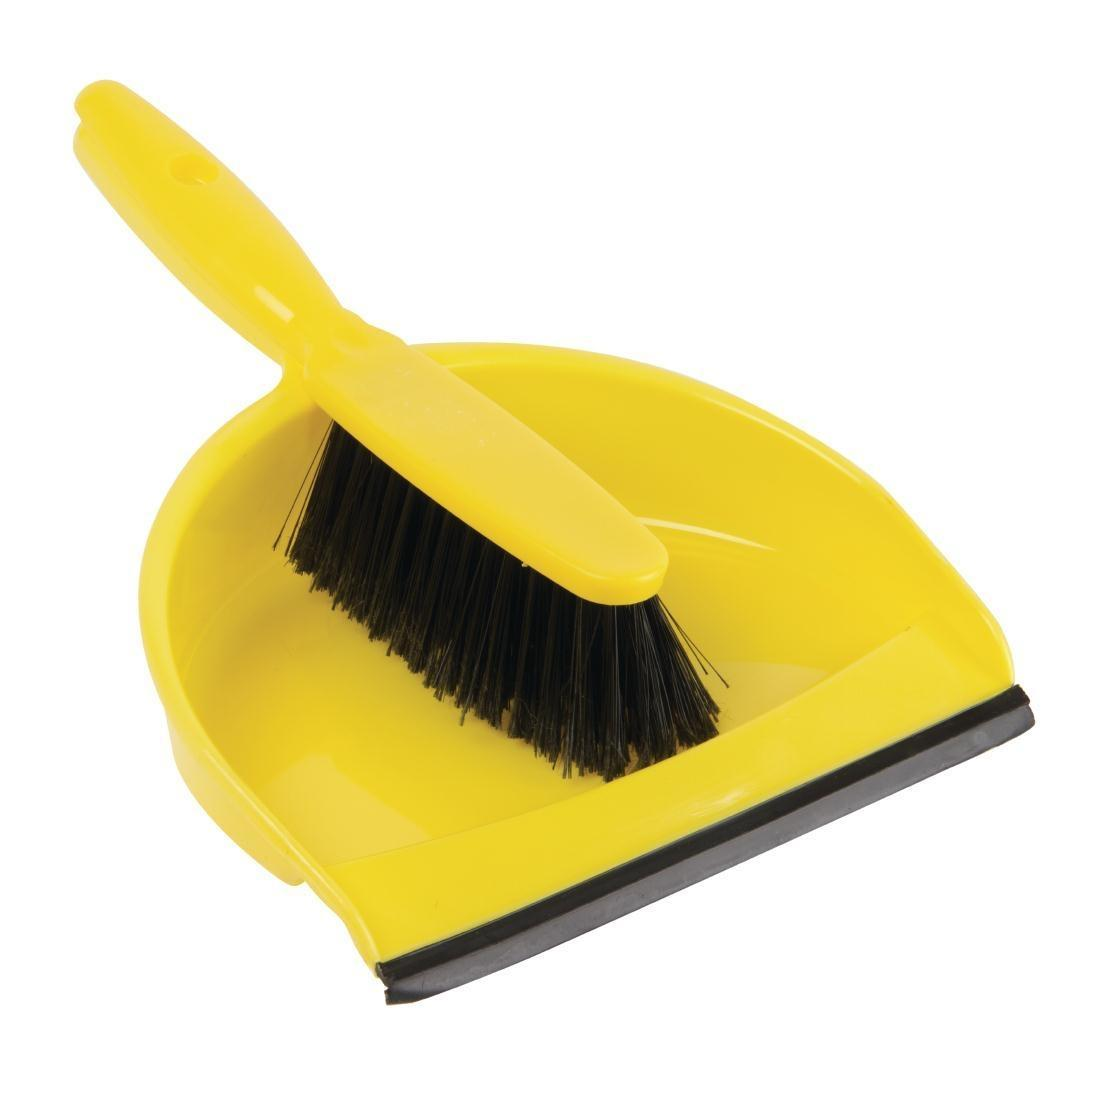 Jantex Soft Dustpan and Brush Set Yellow